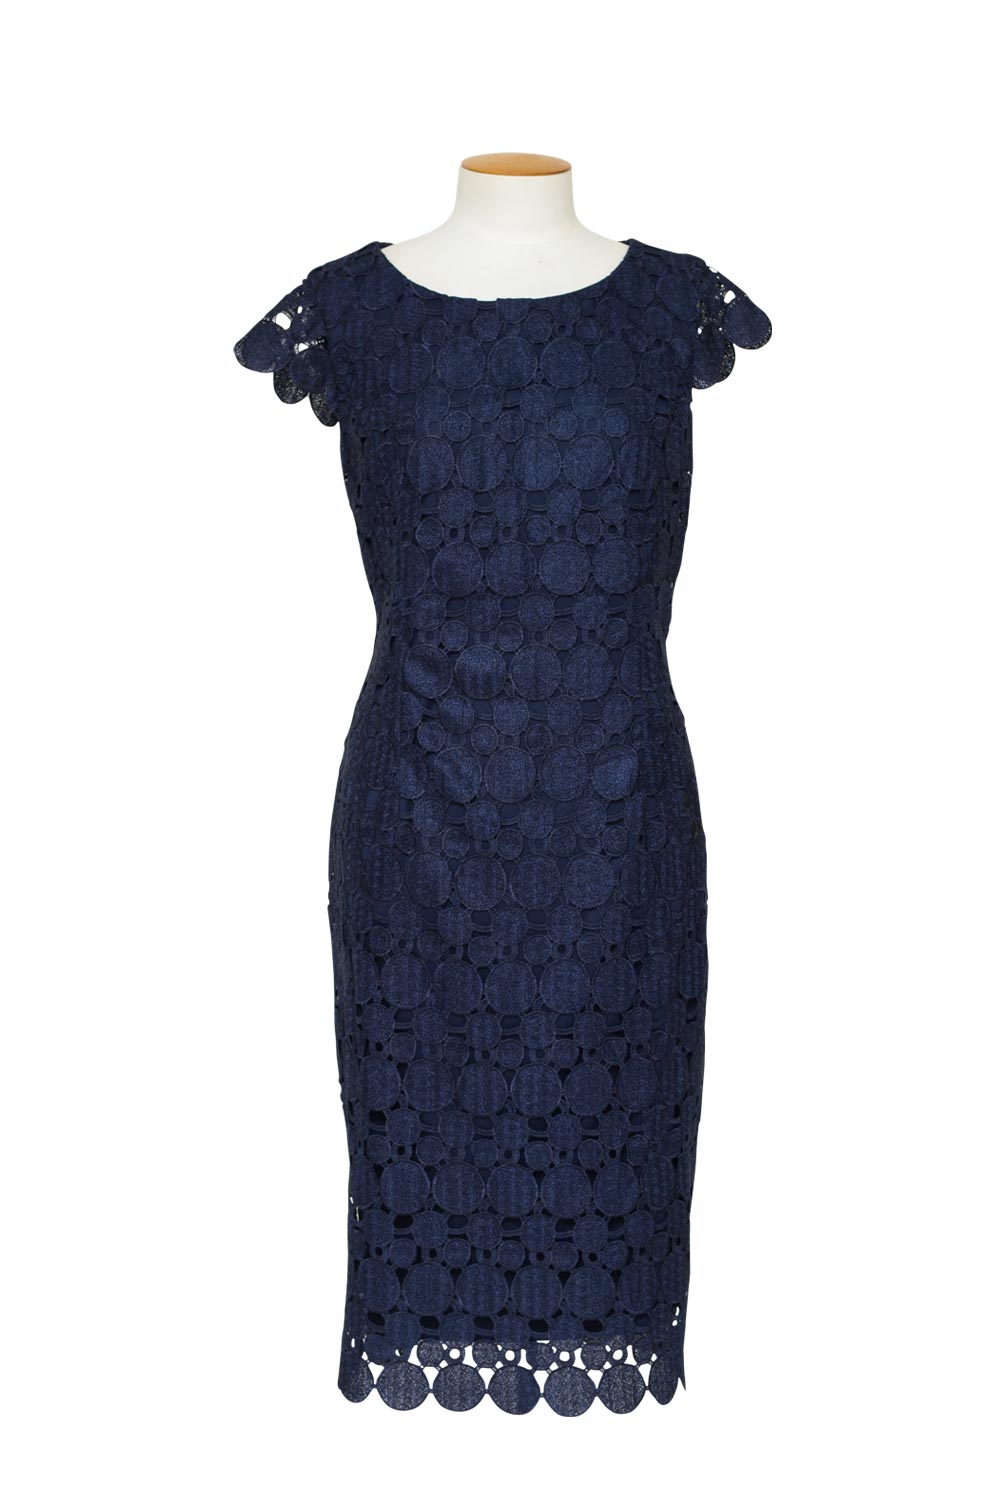 Layla Jones / Jesse Harper LJ0160/JH0194 - Lace Dress with Jacket